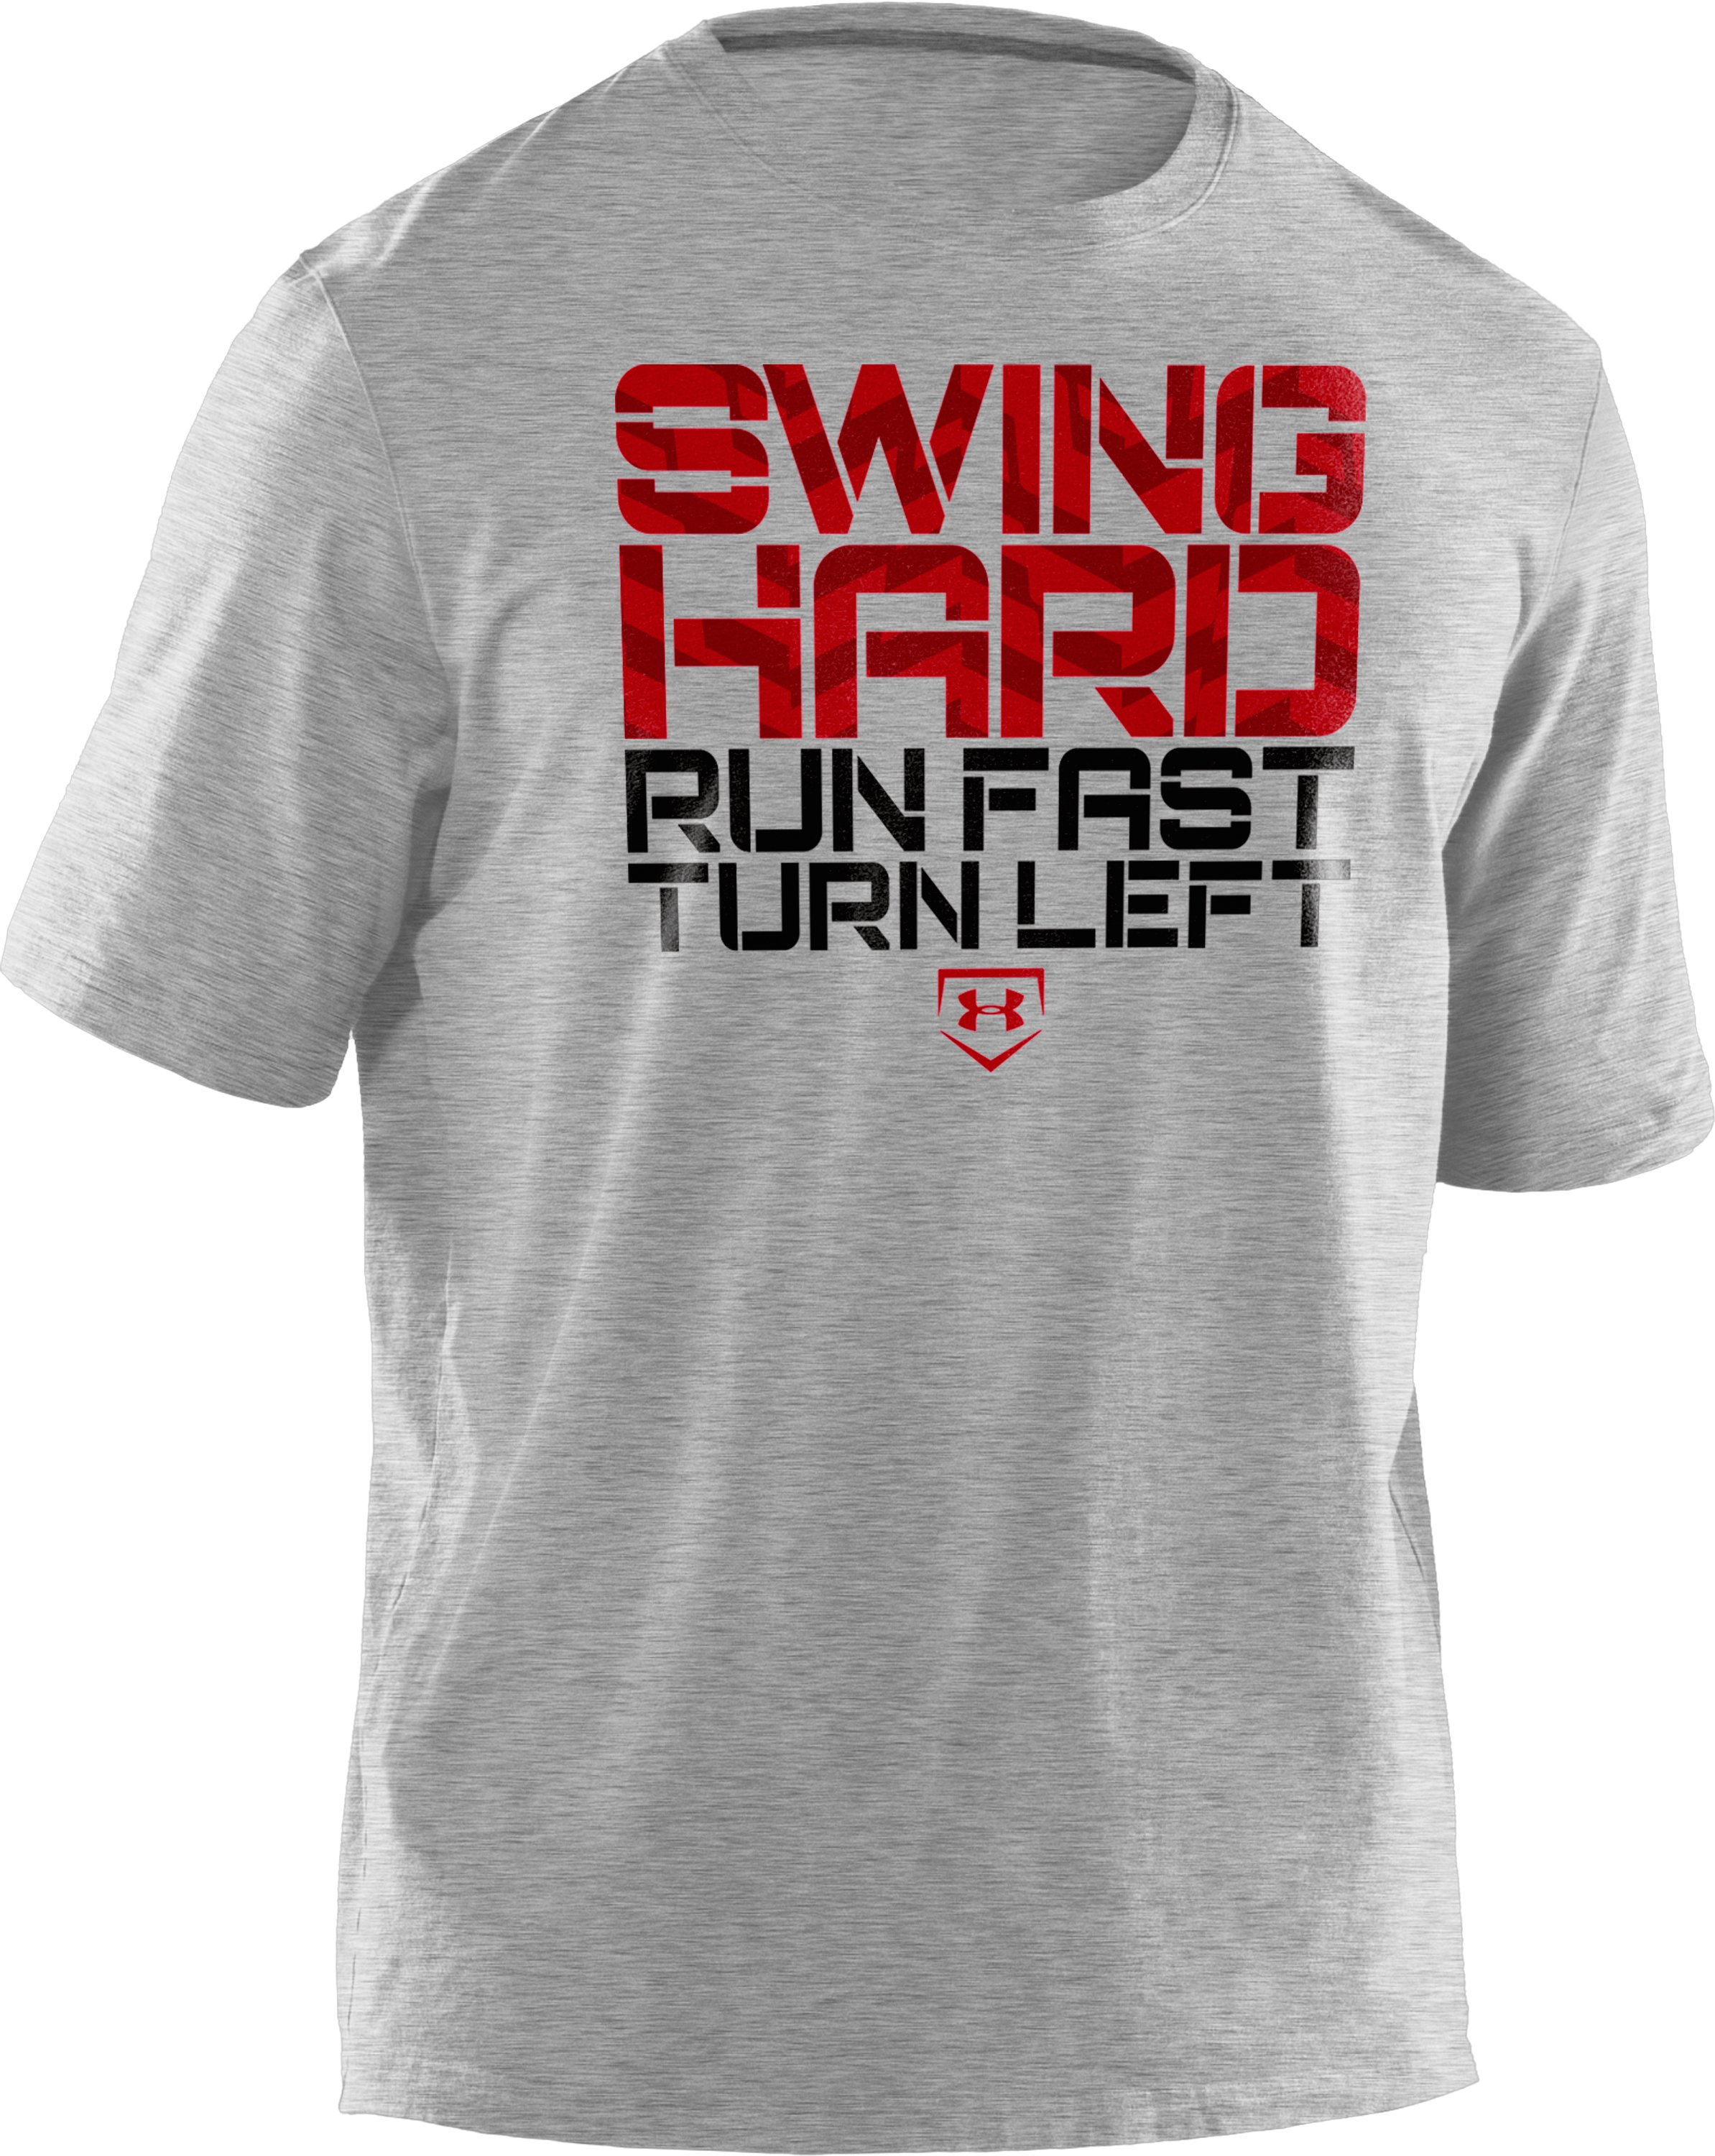 Boys' UA Swing Hard T-Shirt, True Gray Heather